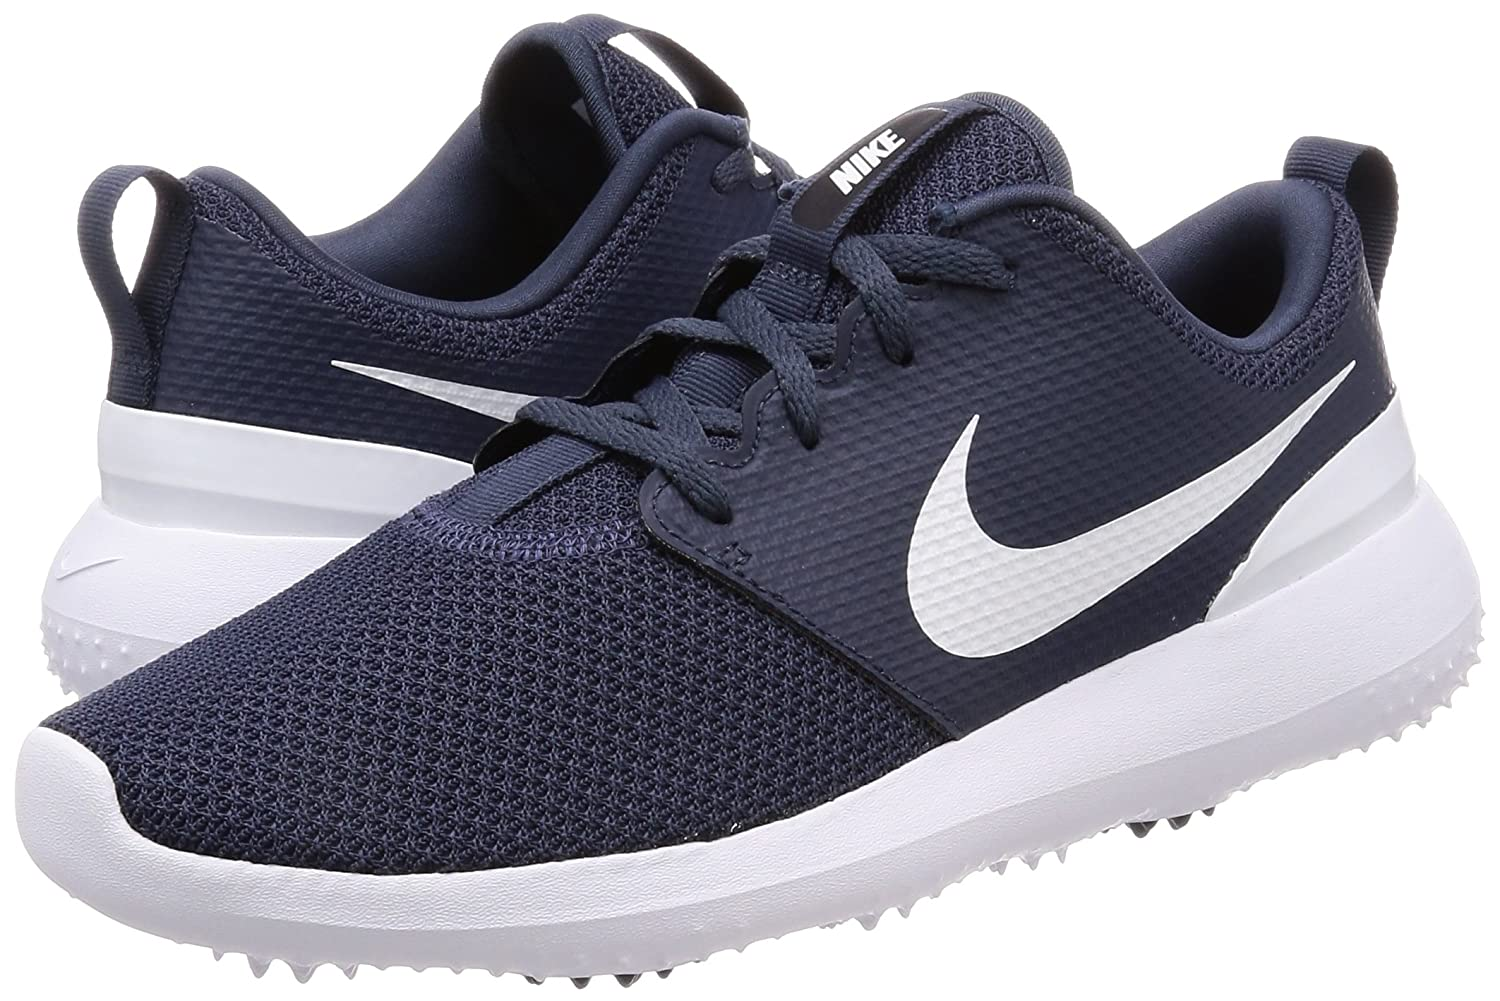 buy online 8c33c de897 Amazon.com  Nike Mens Roshe G Golf Shoe Thunder BlueWhite Size 13 M US   Golf